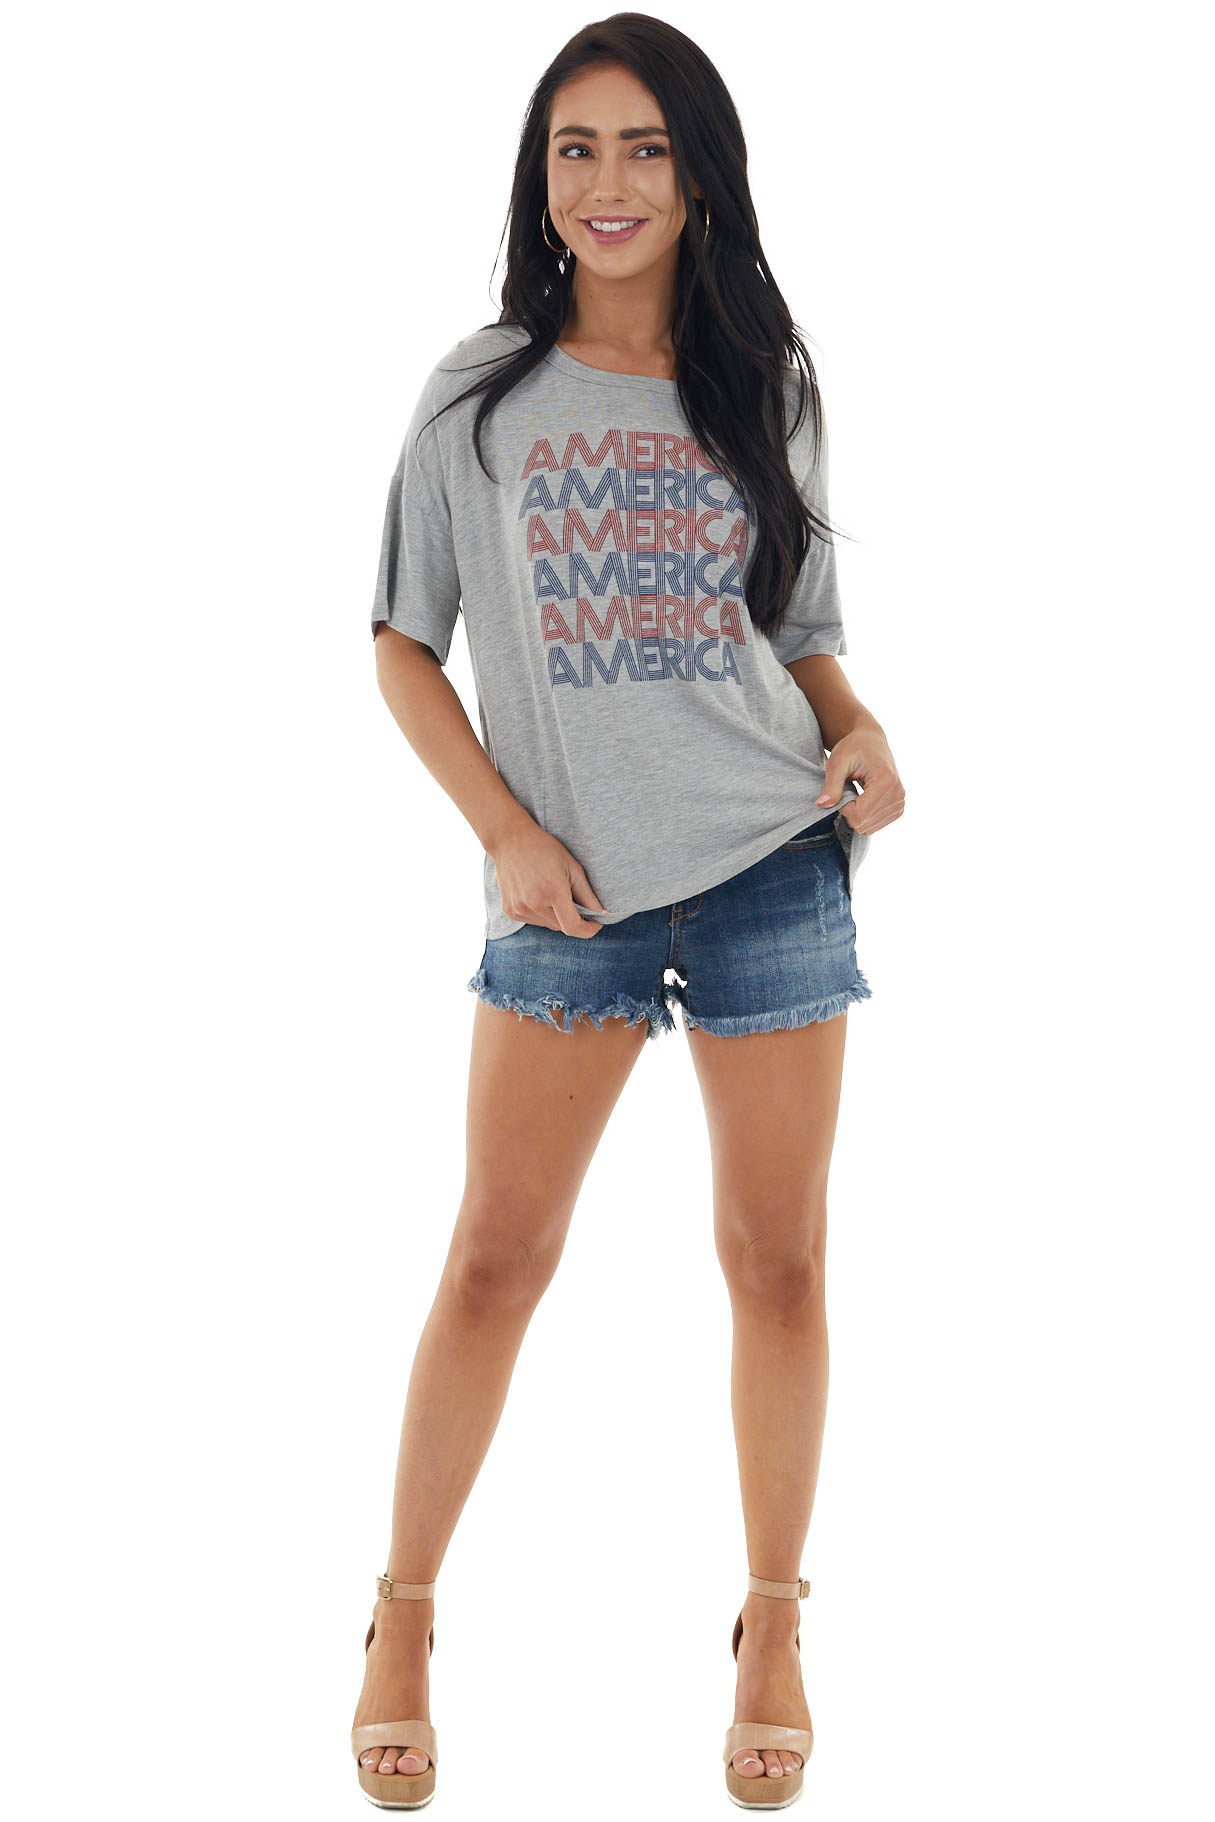 Heather Grey Short Sleeve Knit Top with 'America' Graphic